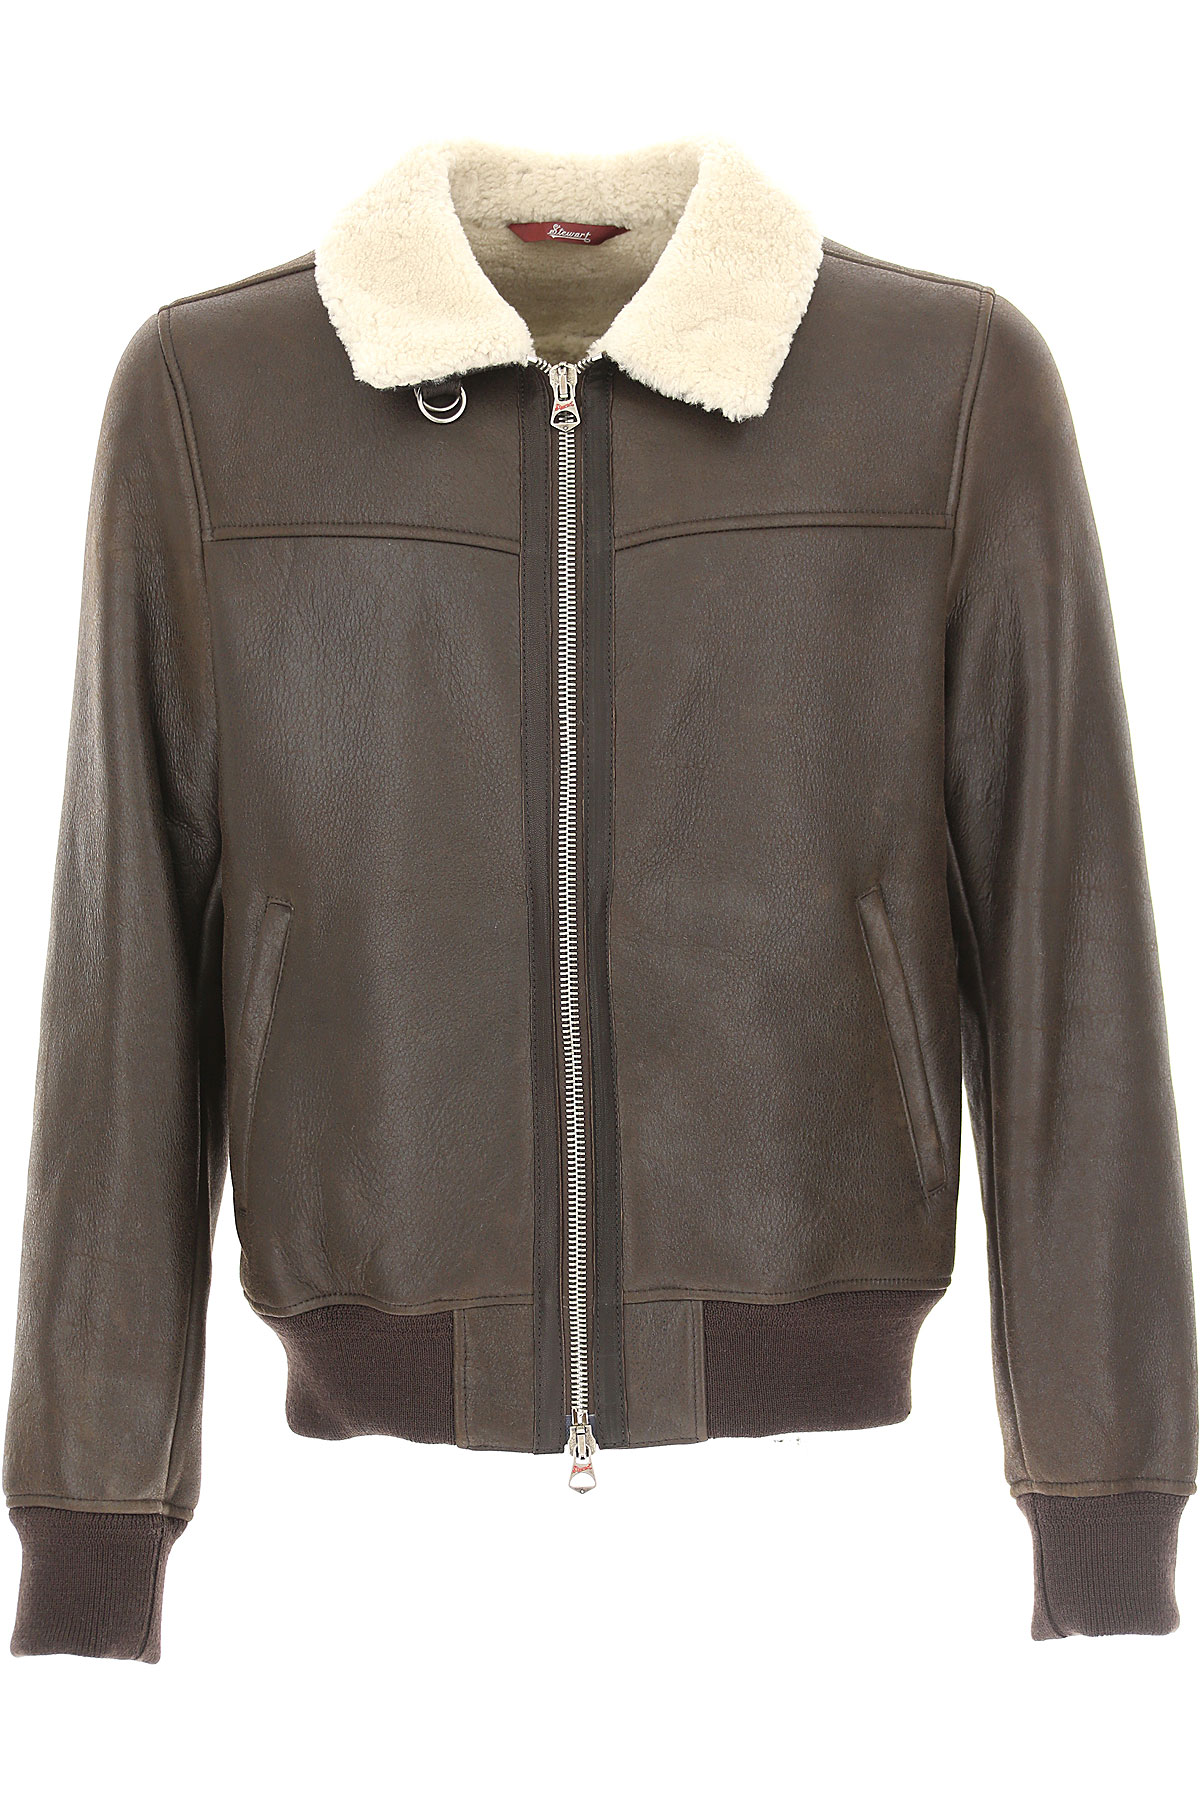 Image of Stewart Leather Jacket for Men, Anthracite, Leather, 2017, L M